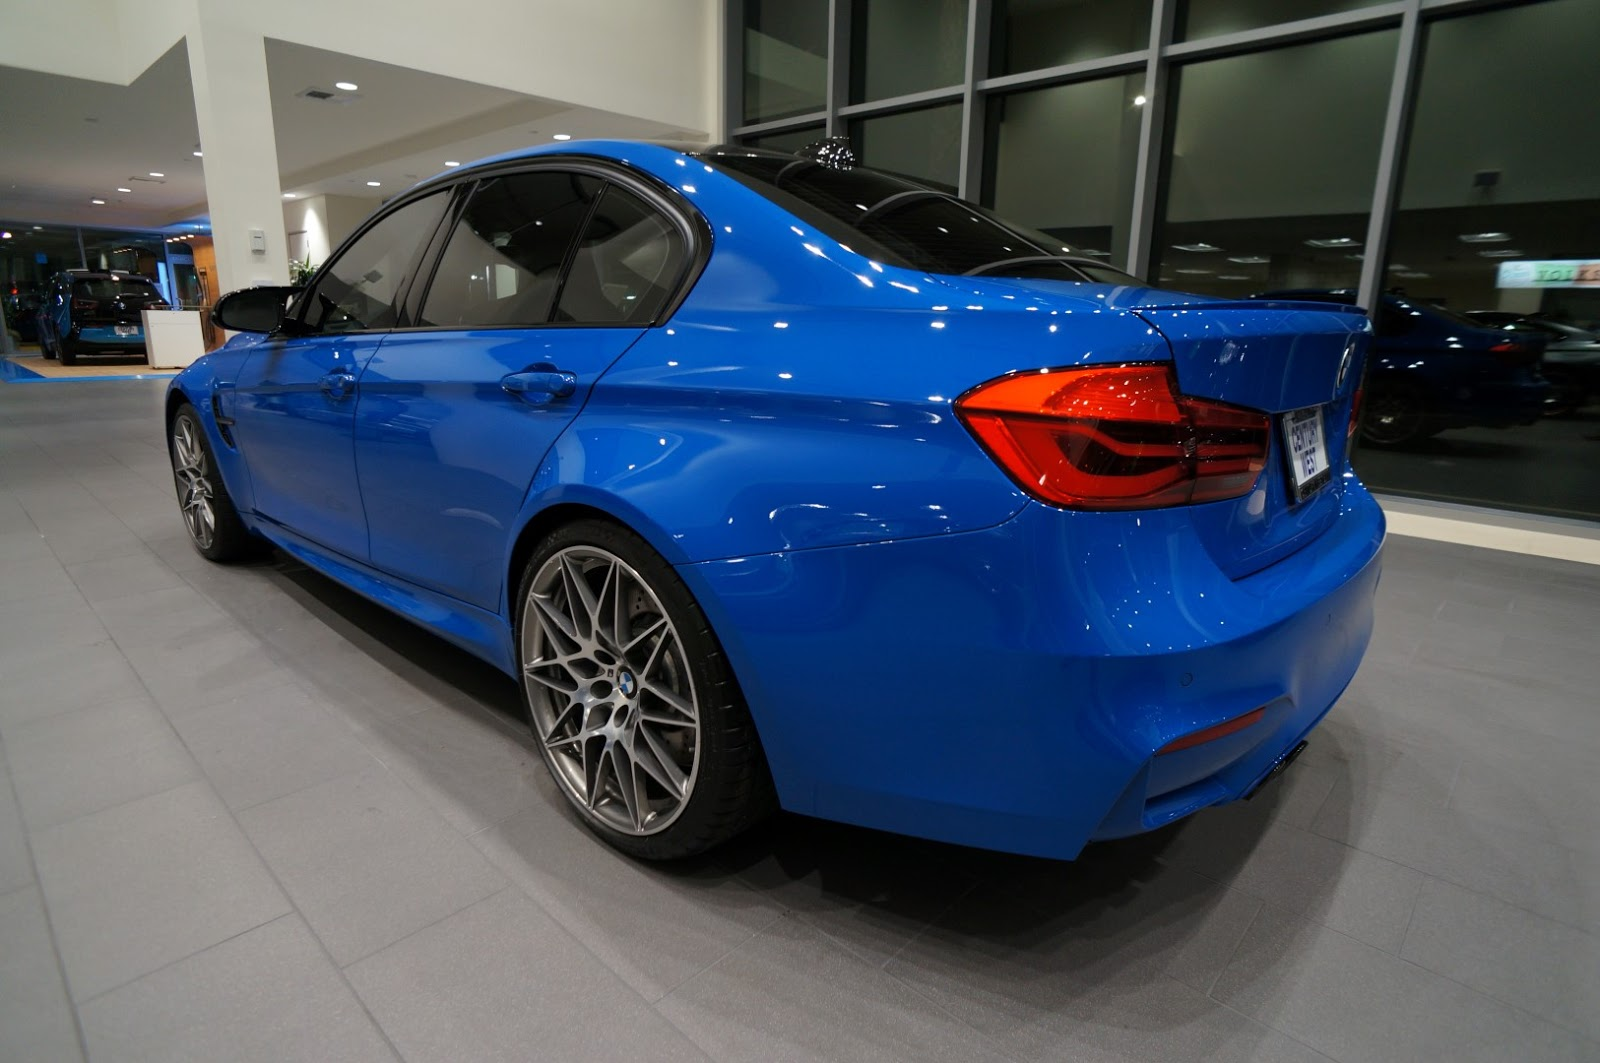 Rare Enzian Blue Bmw M3 Individual Is Gorgeous But Costs More Than An M5 Carscoops